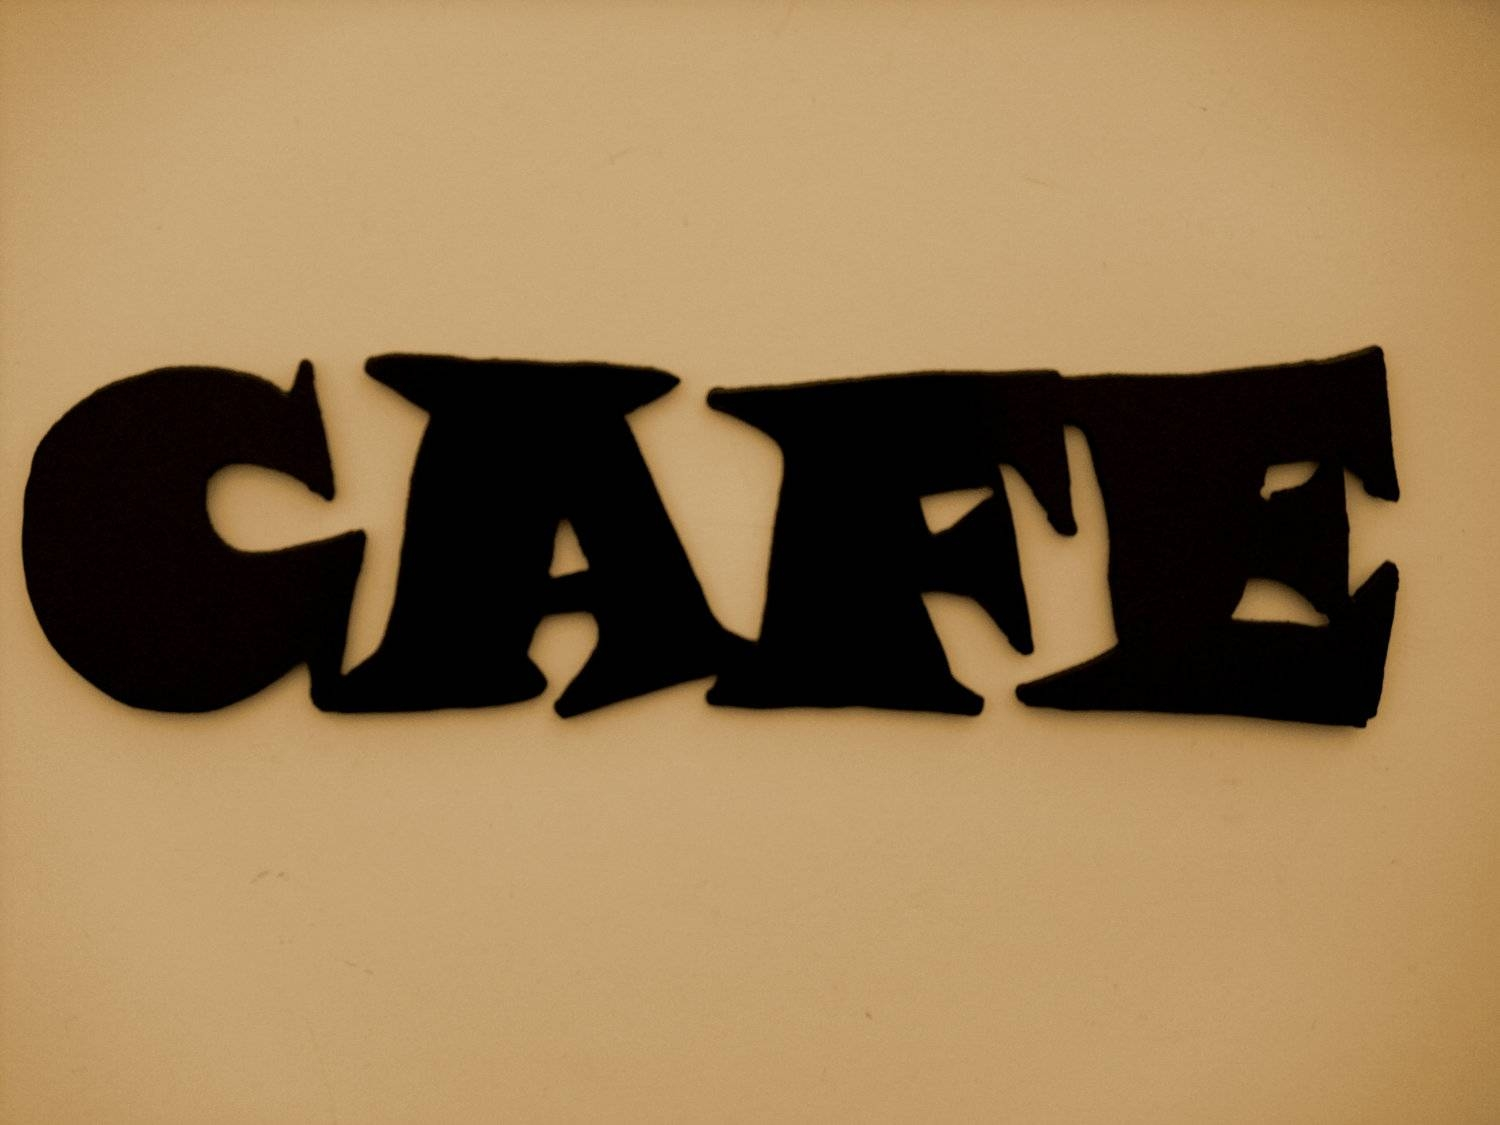 Metal Wall Art Decor Cafe Word Kitchen Free Shipping Regarding Current Cafe Metal Wall Art (View 16 of 20)